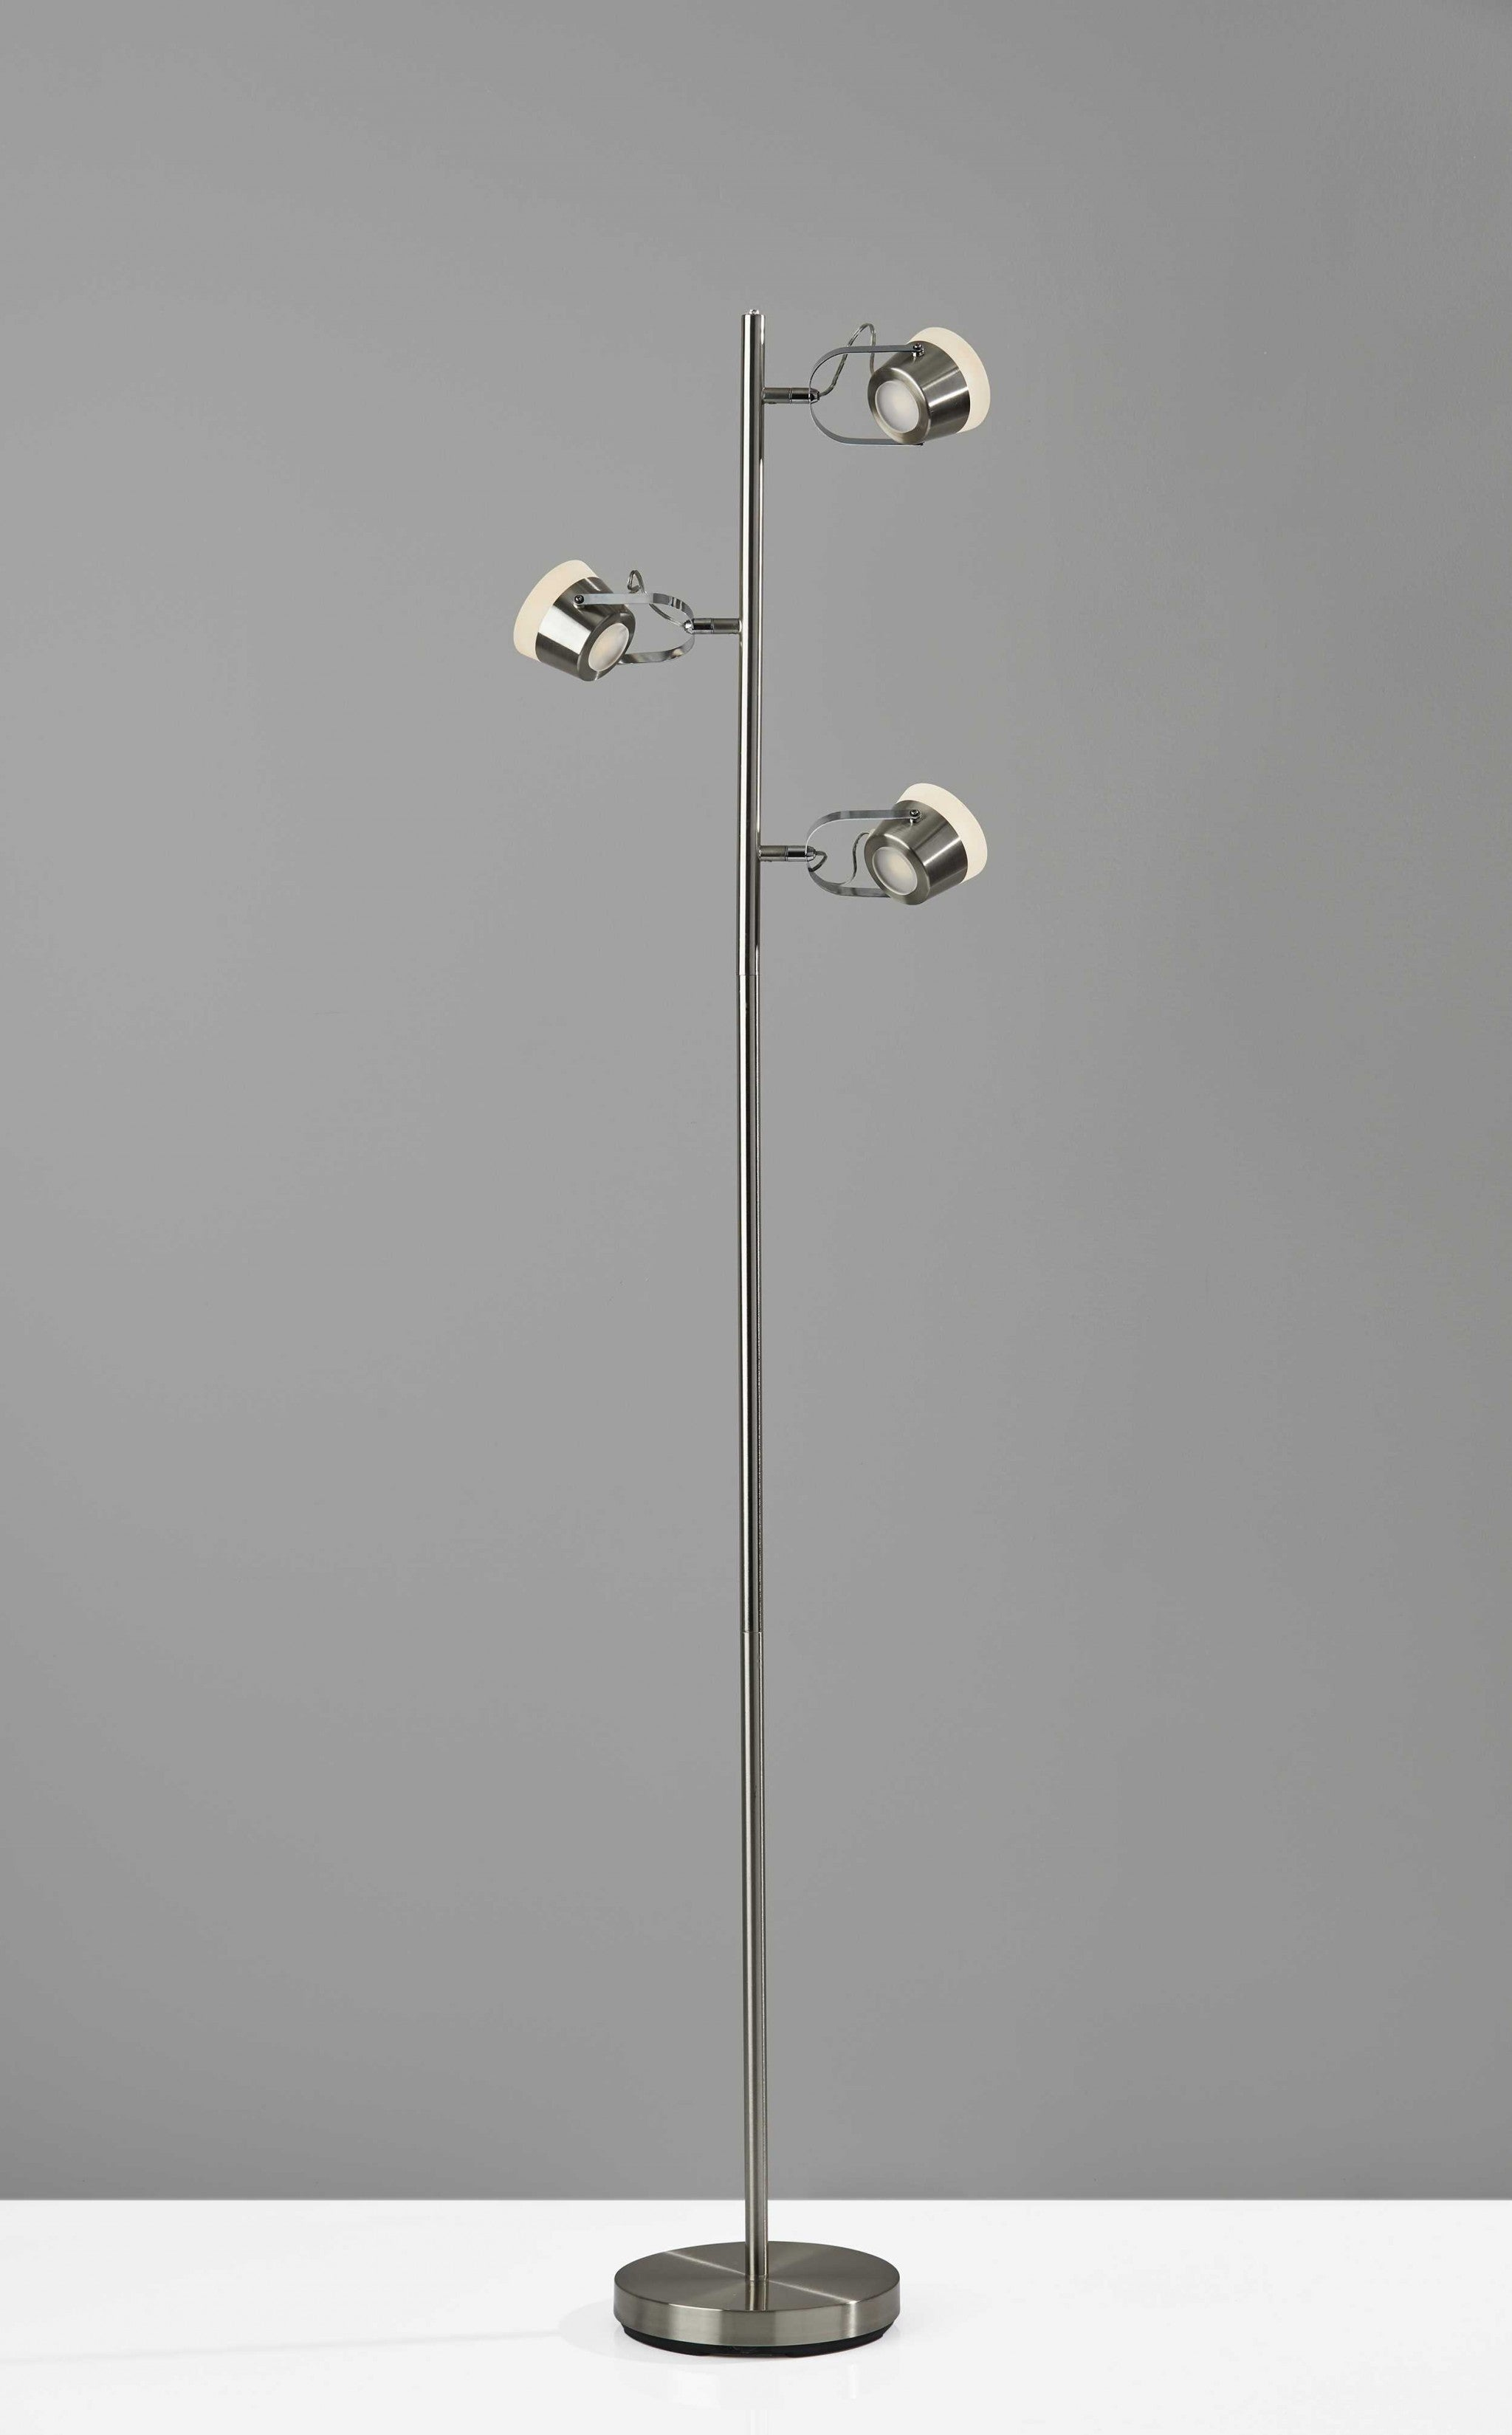 Three Hollywood Spotlights Floor Lamp in Brushed Steel